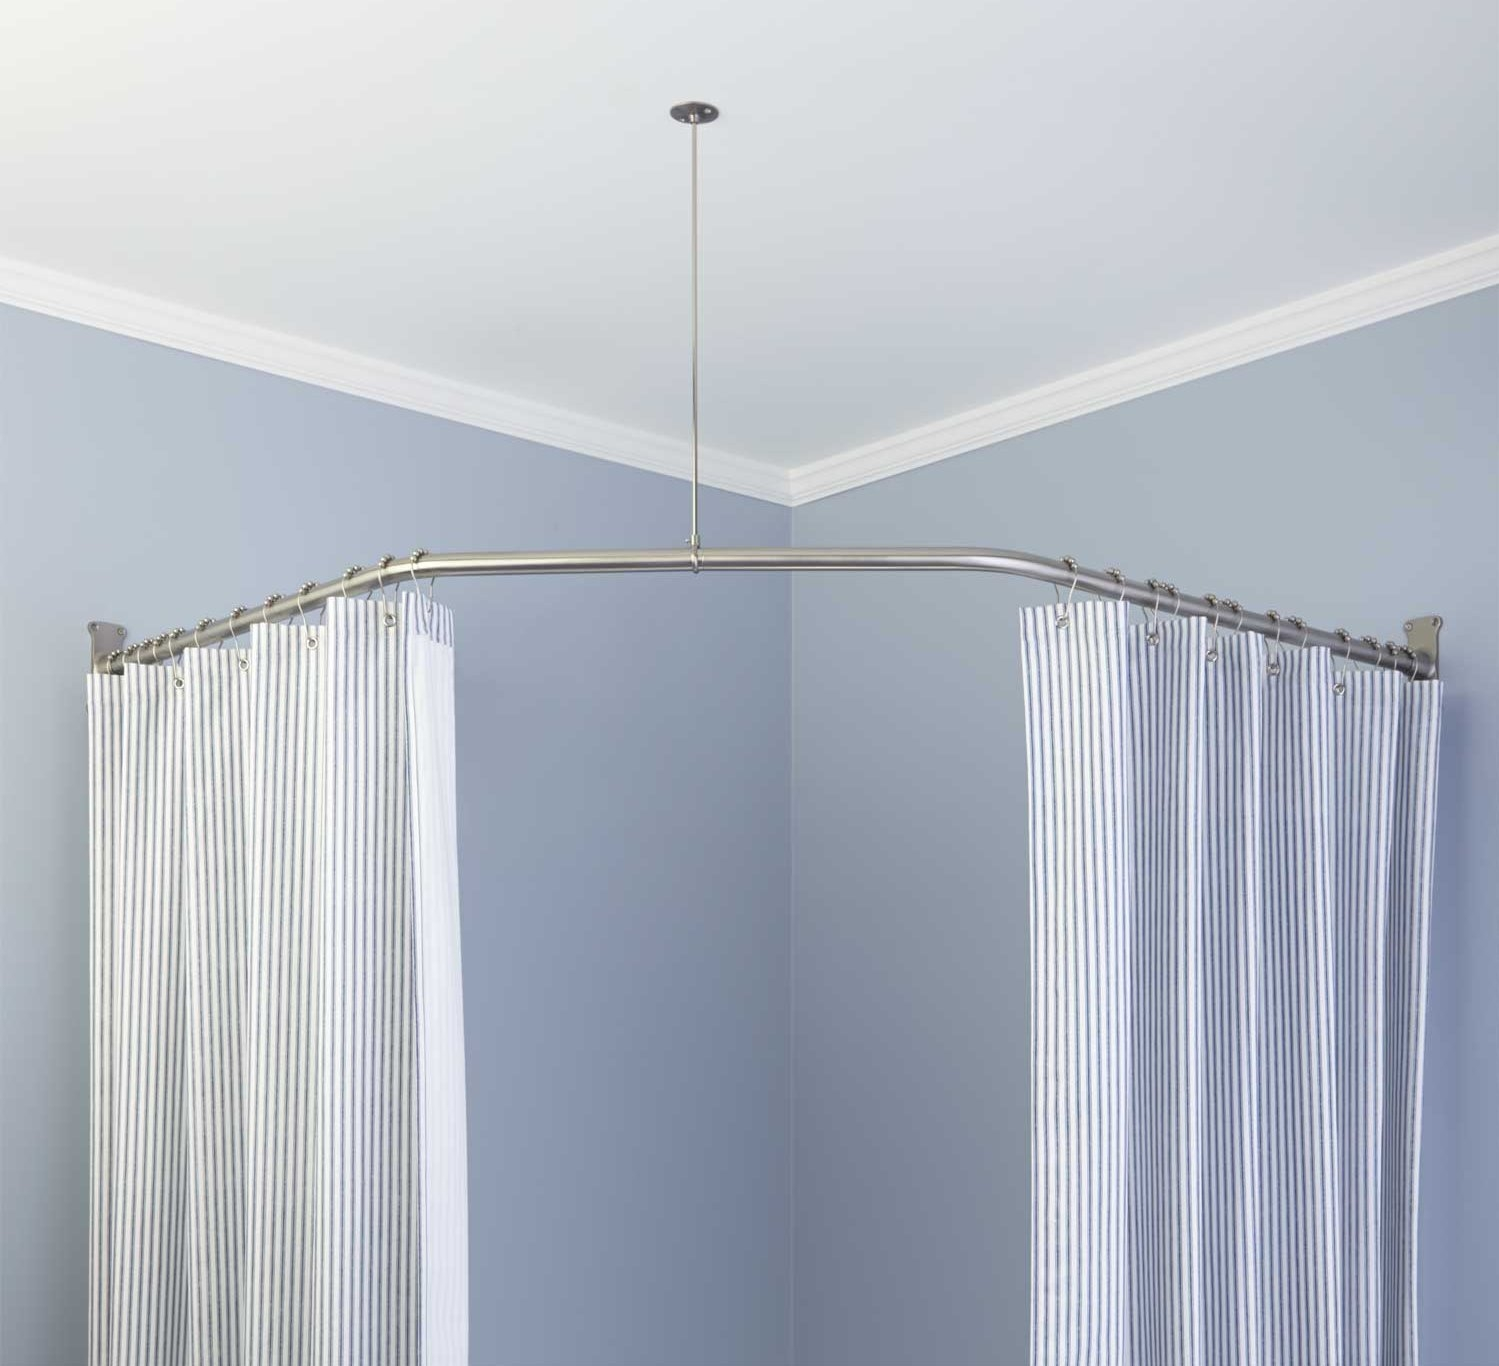 Interior Strong But Elegant Styles Of L Shaped Shower Curtain Rod With Regard To L Shaped Shower Curtain Rods (Image 10 of 25)